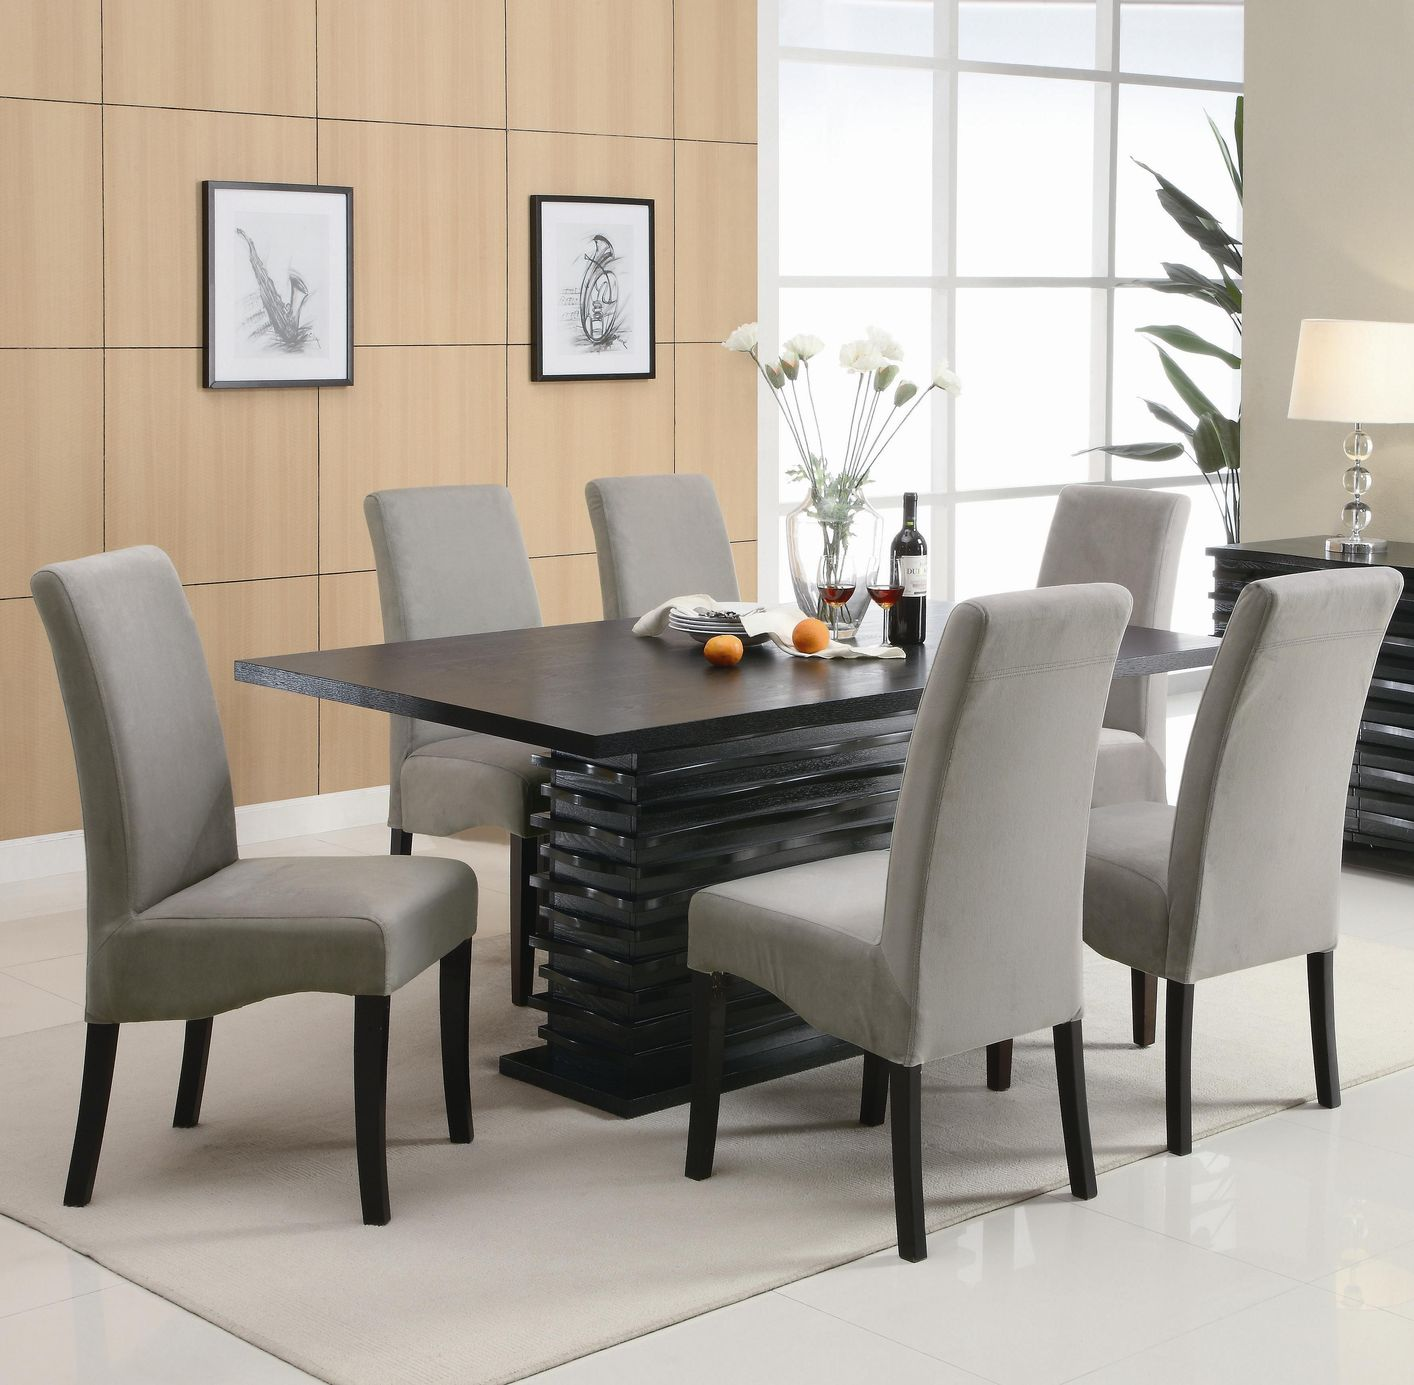 Stanton 102061 102062 Black Wood Dining Table Set In Los Angeles Ca